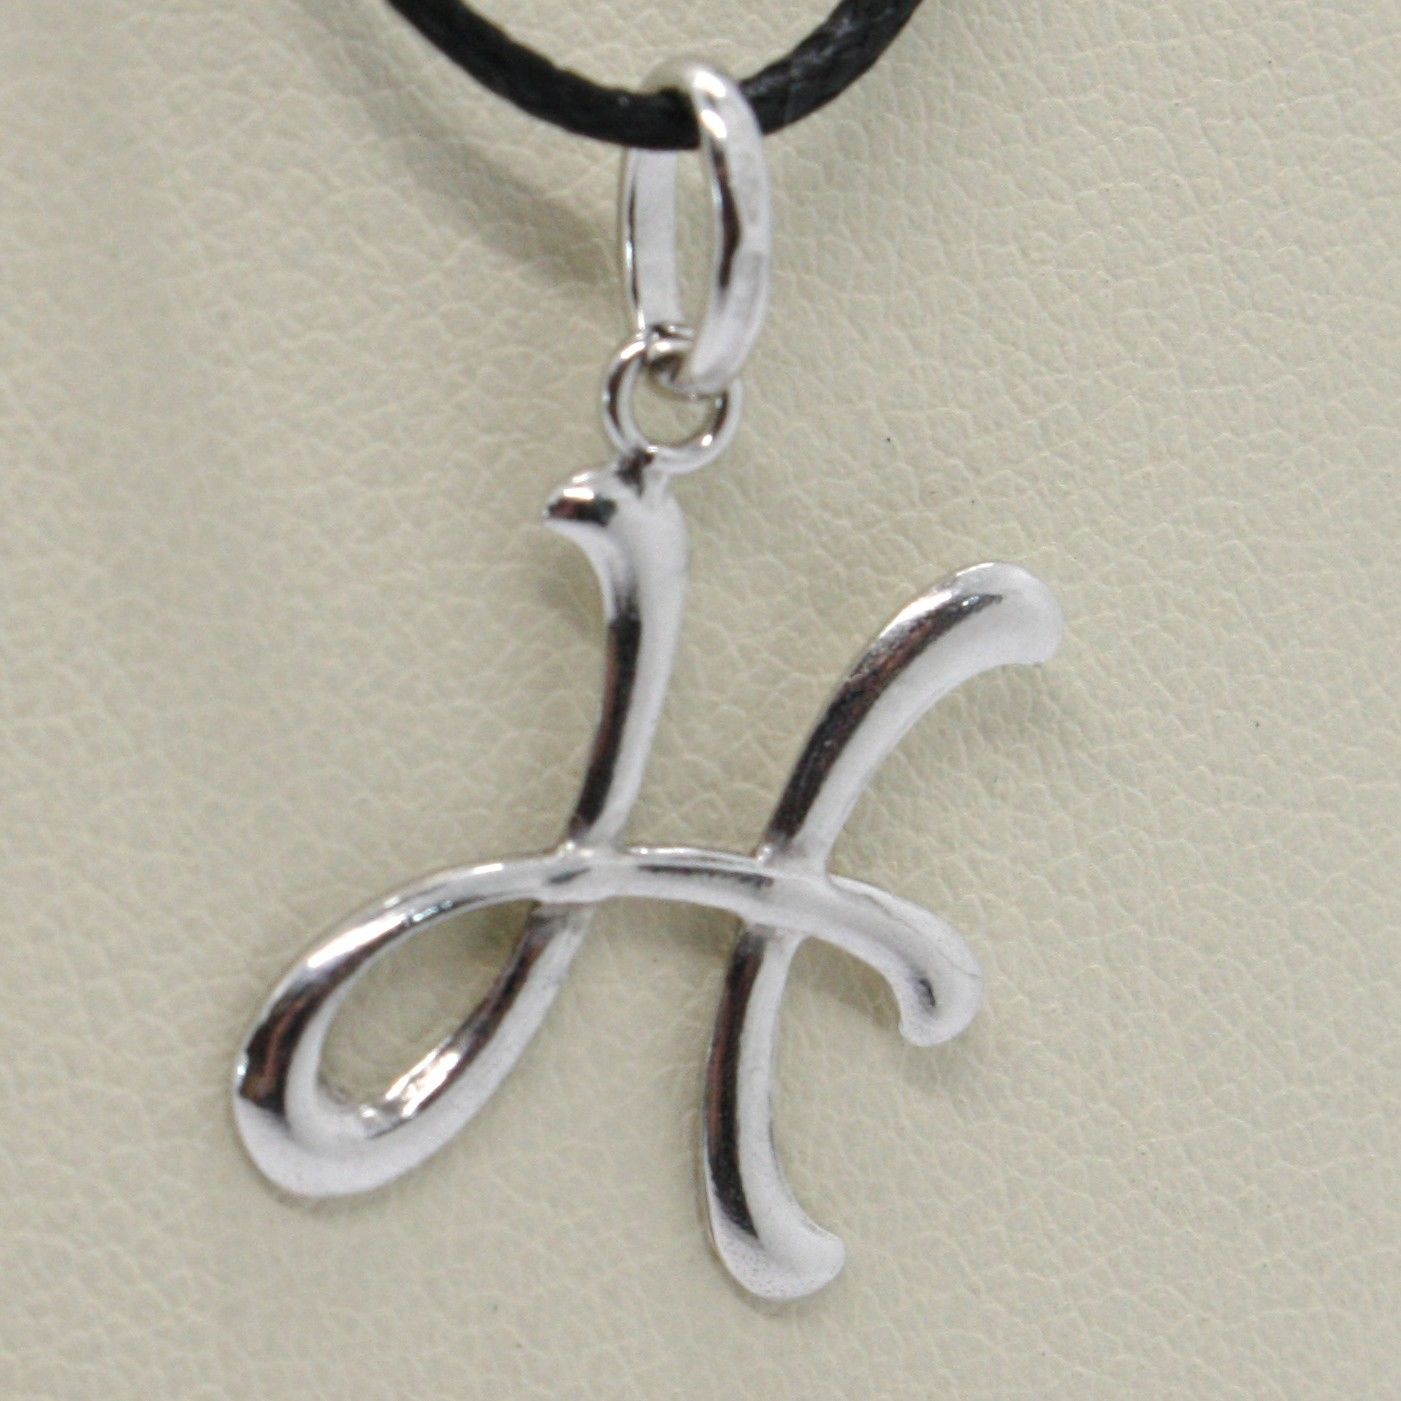 18K WHITE GOLD PENDANT CHARM INITIAL LETTER H, MADE IN ITALY 0.8 INCHES, 21 MM